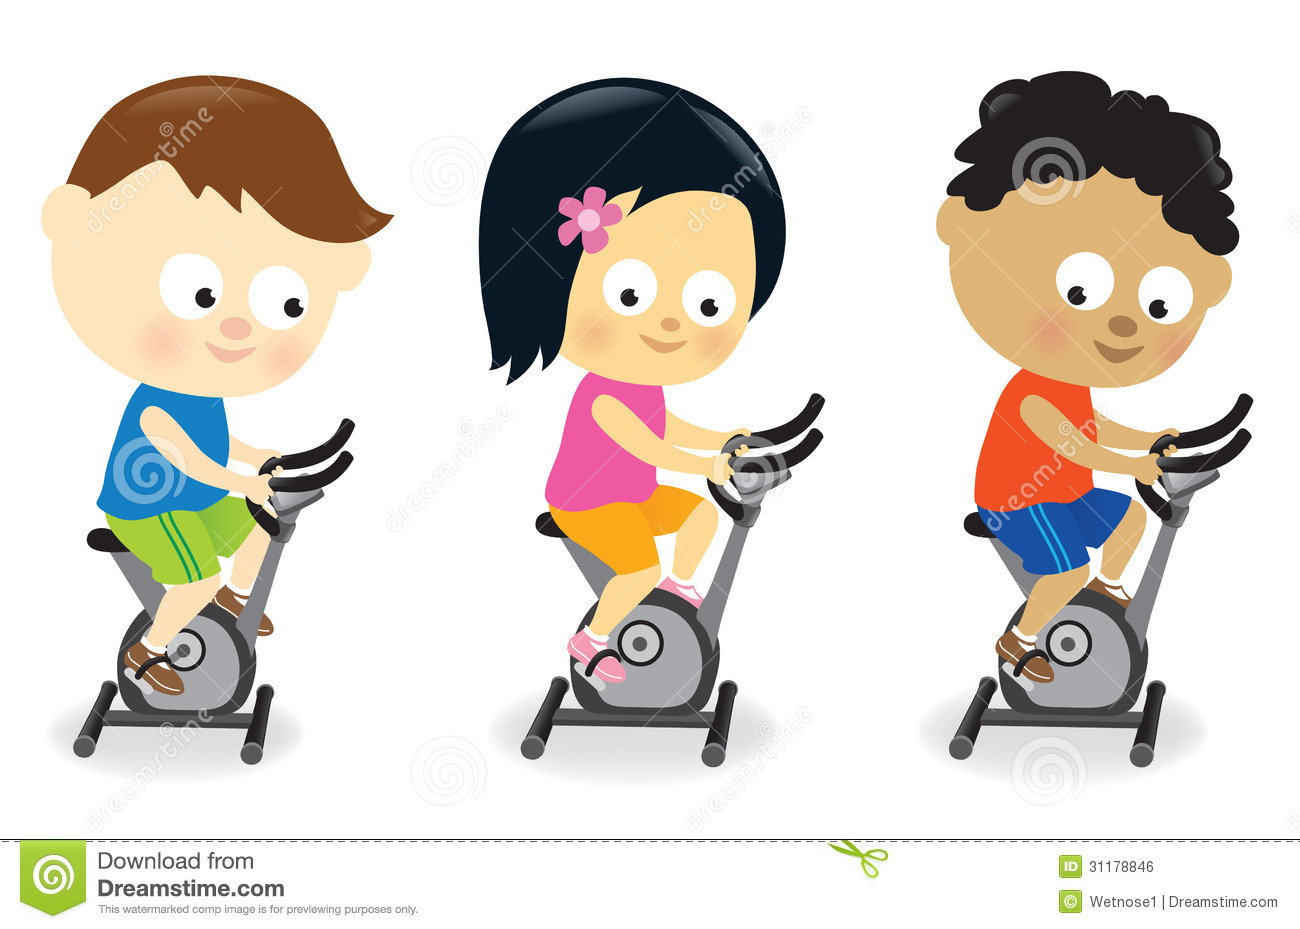 Kids riding exercise bikes stock vector Illustration of cycling